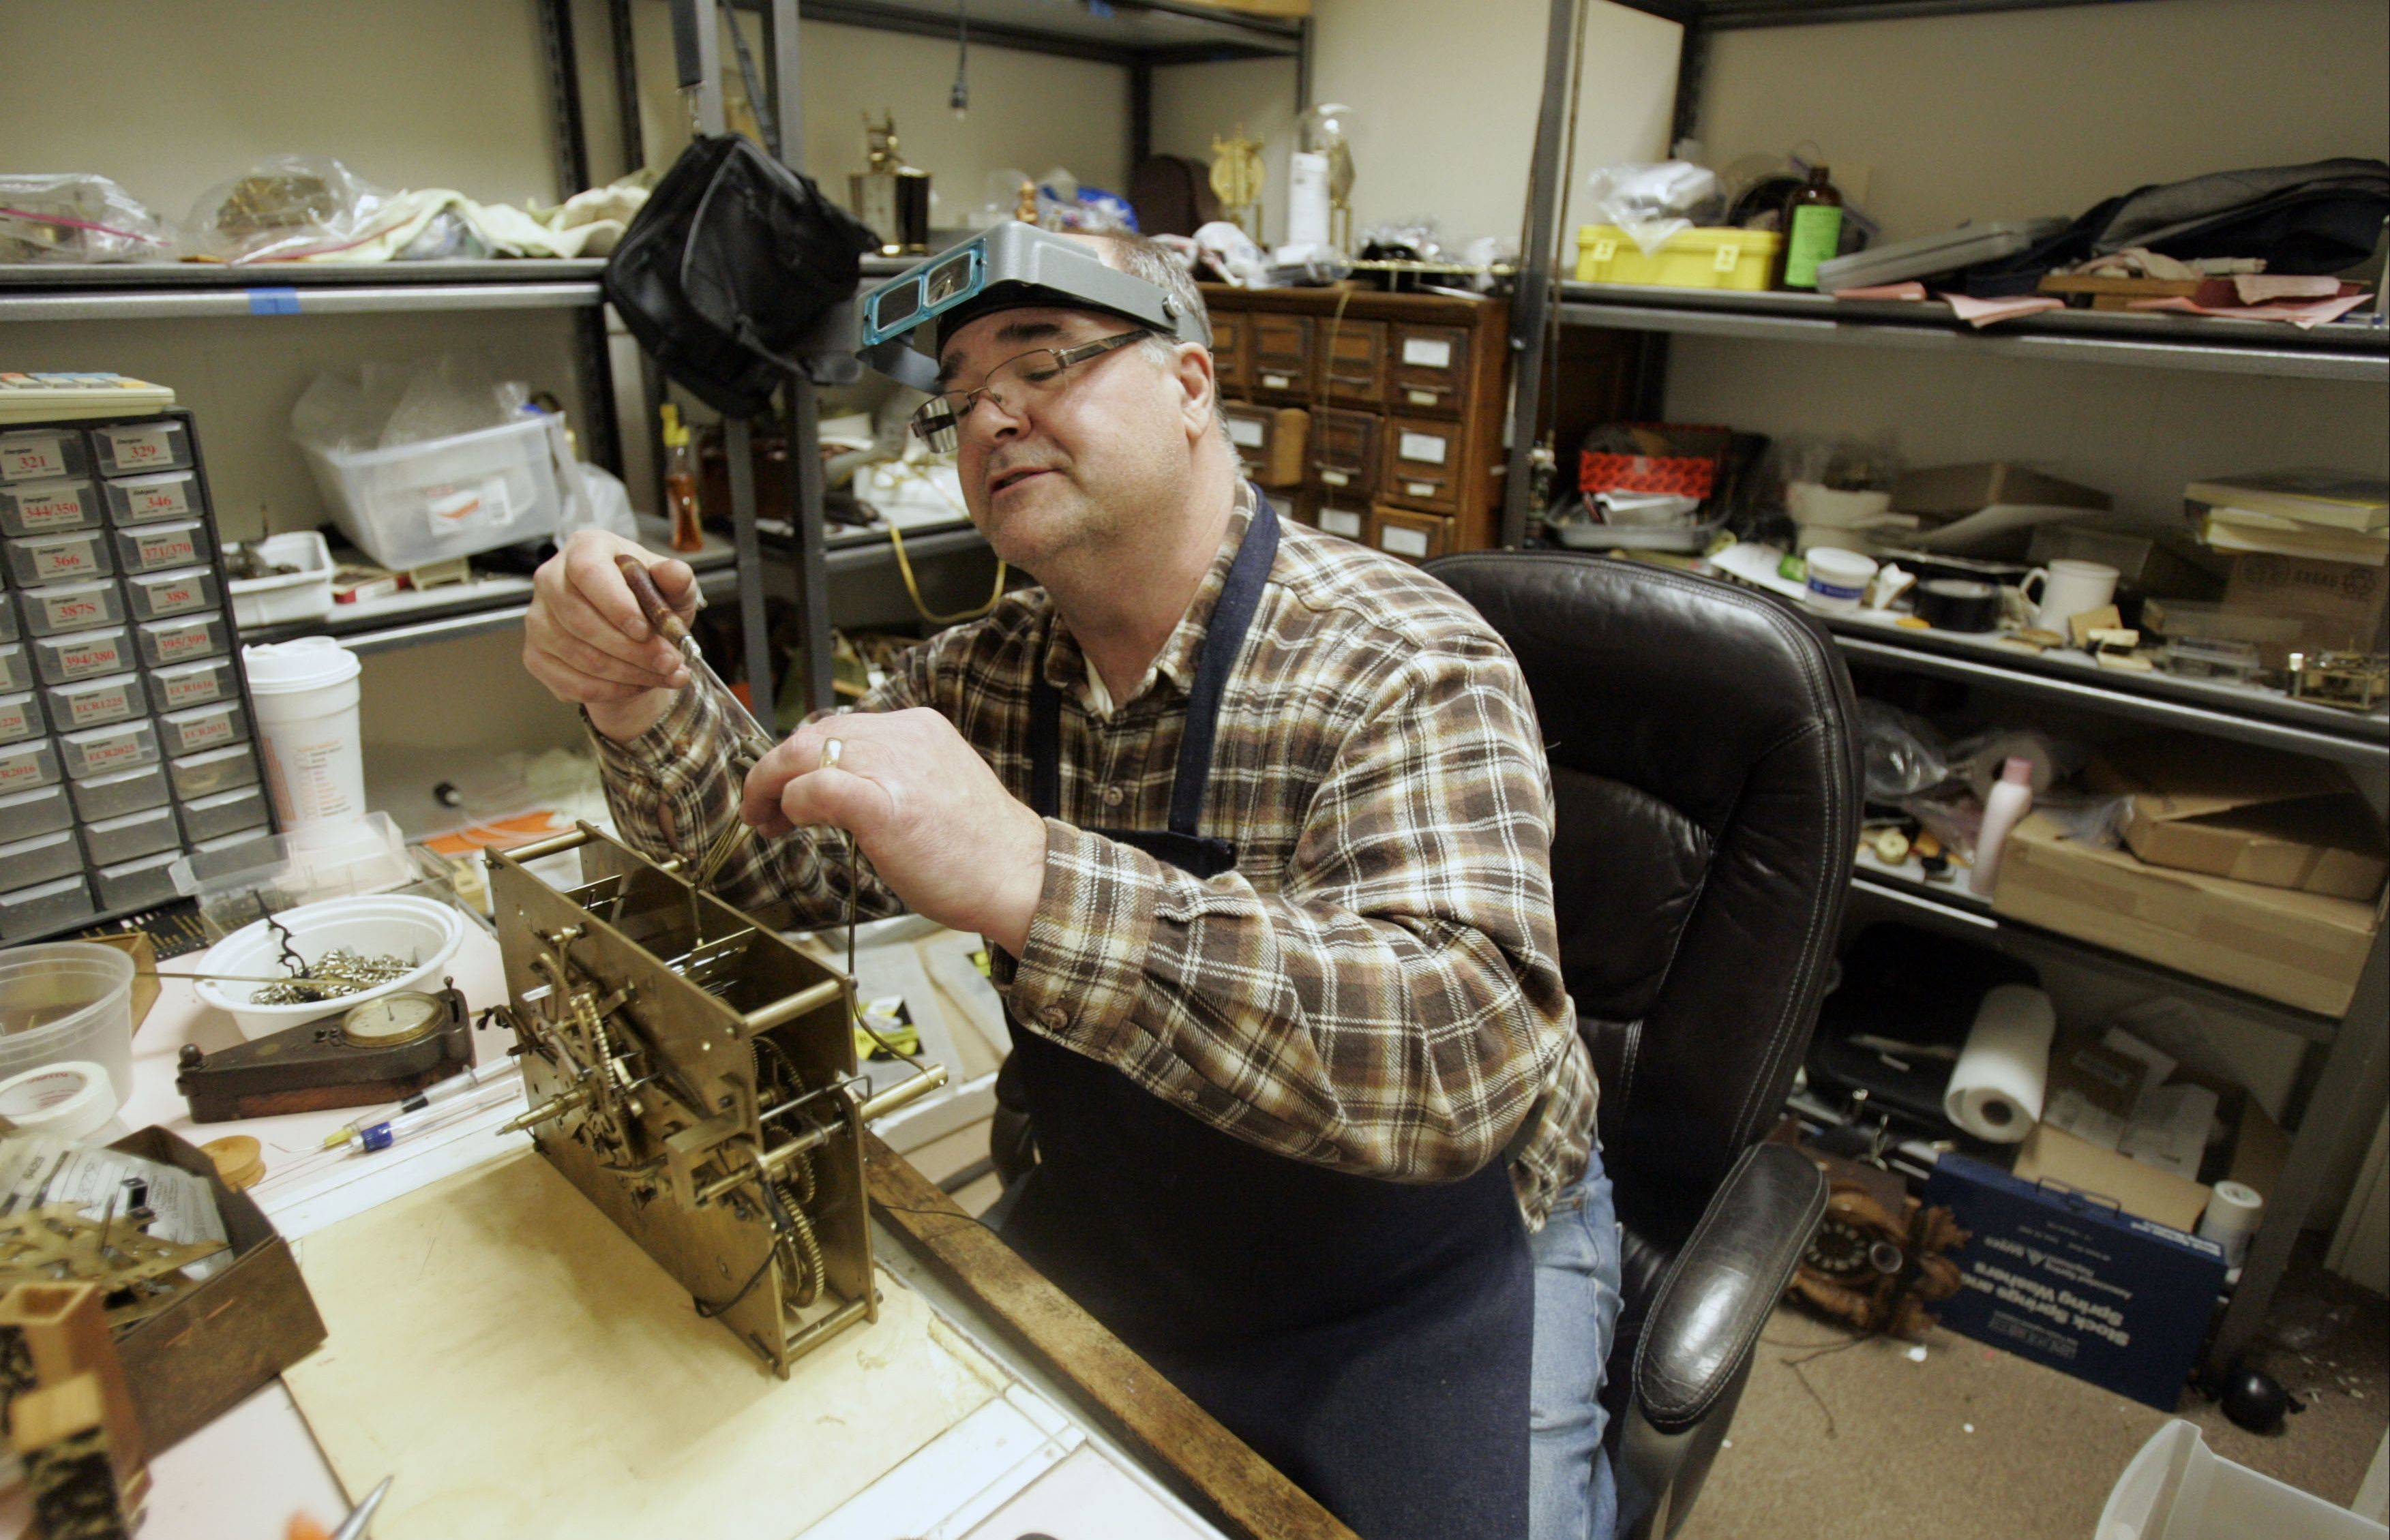 Moving Picture: Time-tested skills behind longevity of repair shops